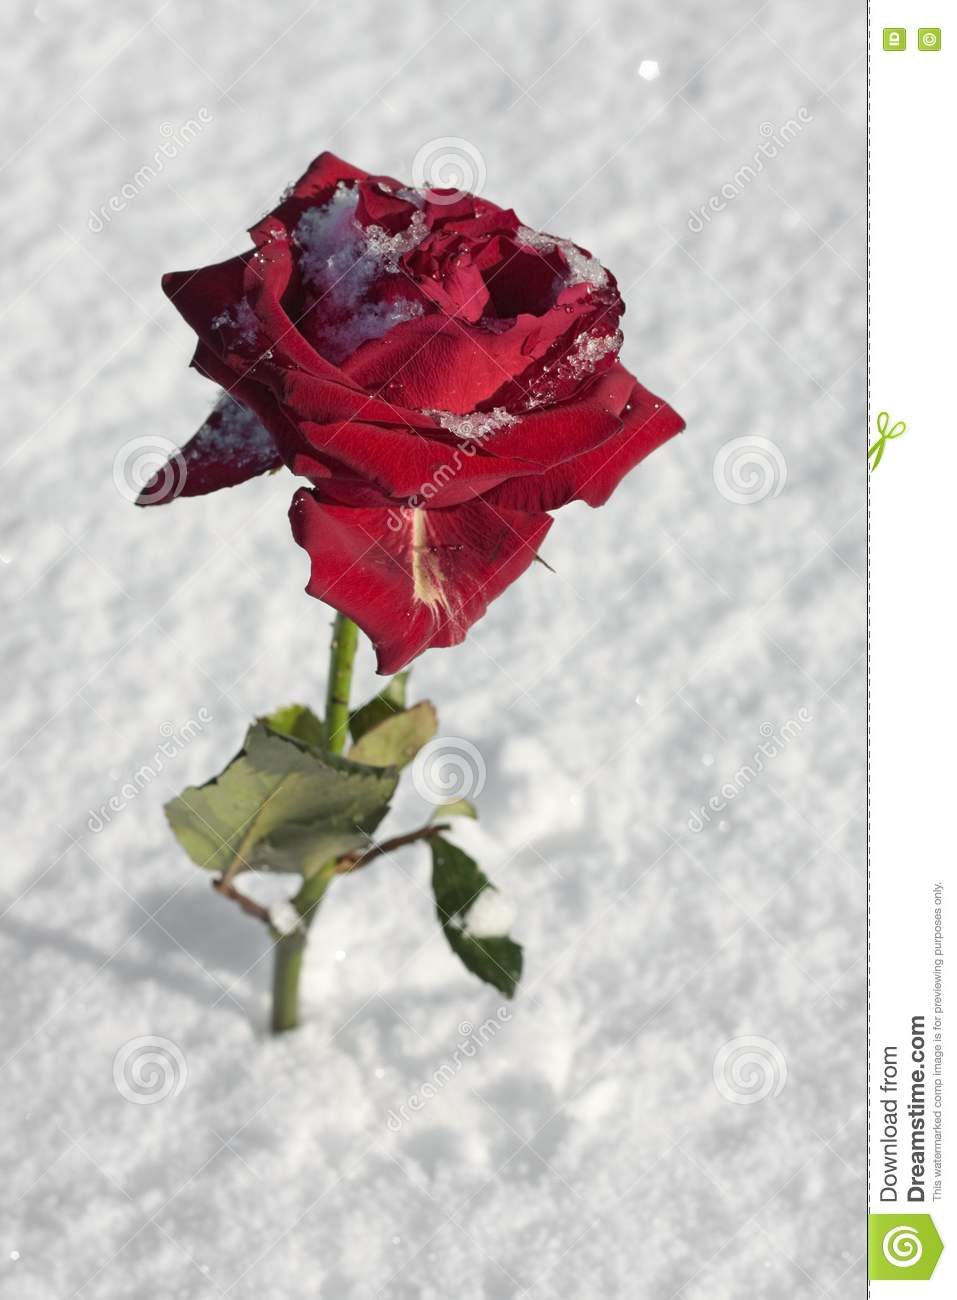 Red Rose On Snow Ground Stock Image Image Of Spring